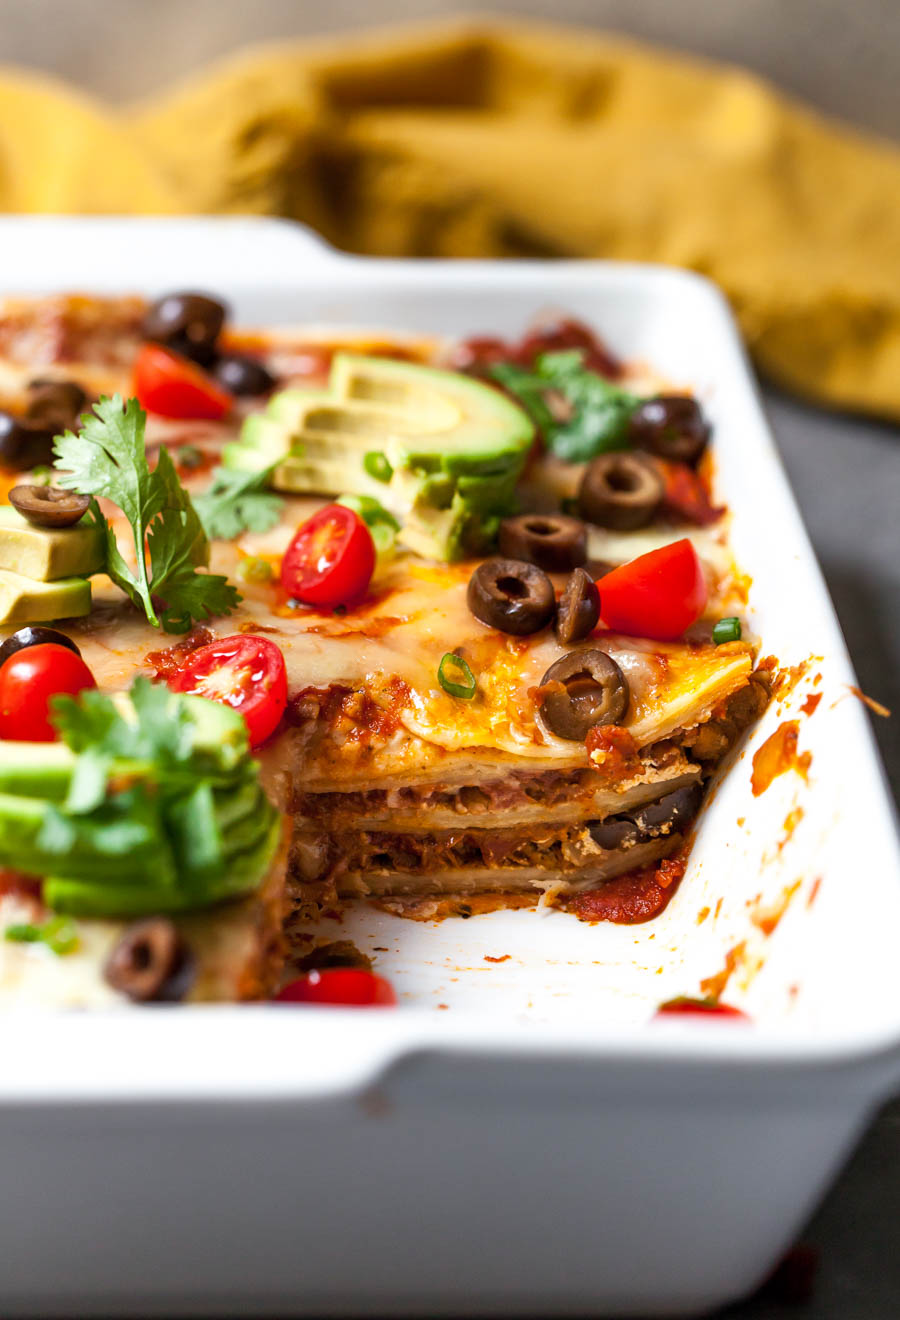 Mexican Casserole with Salsa, Cheese, Plant-Based Chorizo, and Toppings